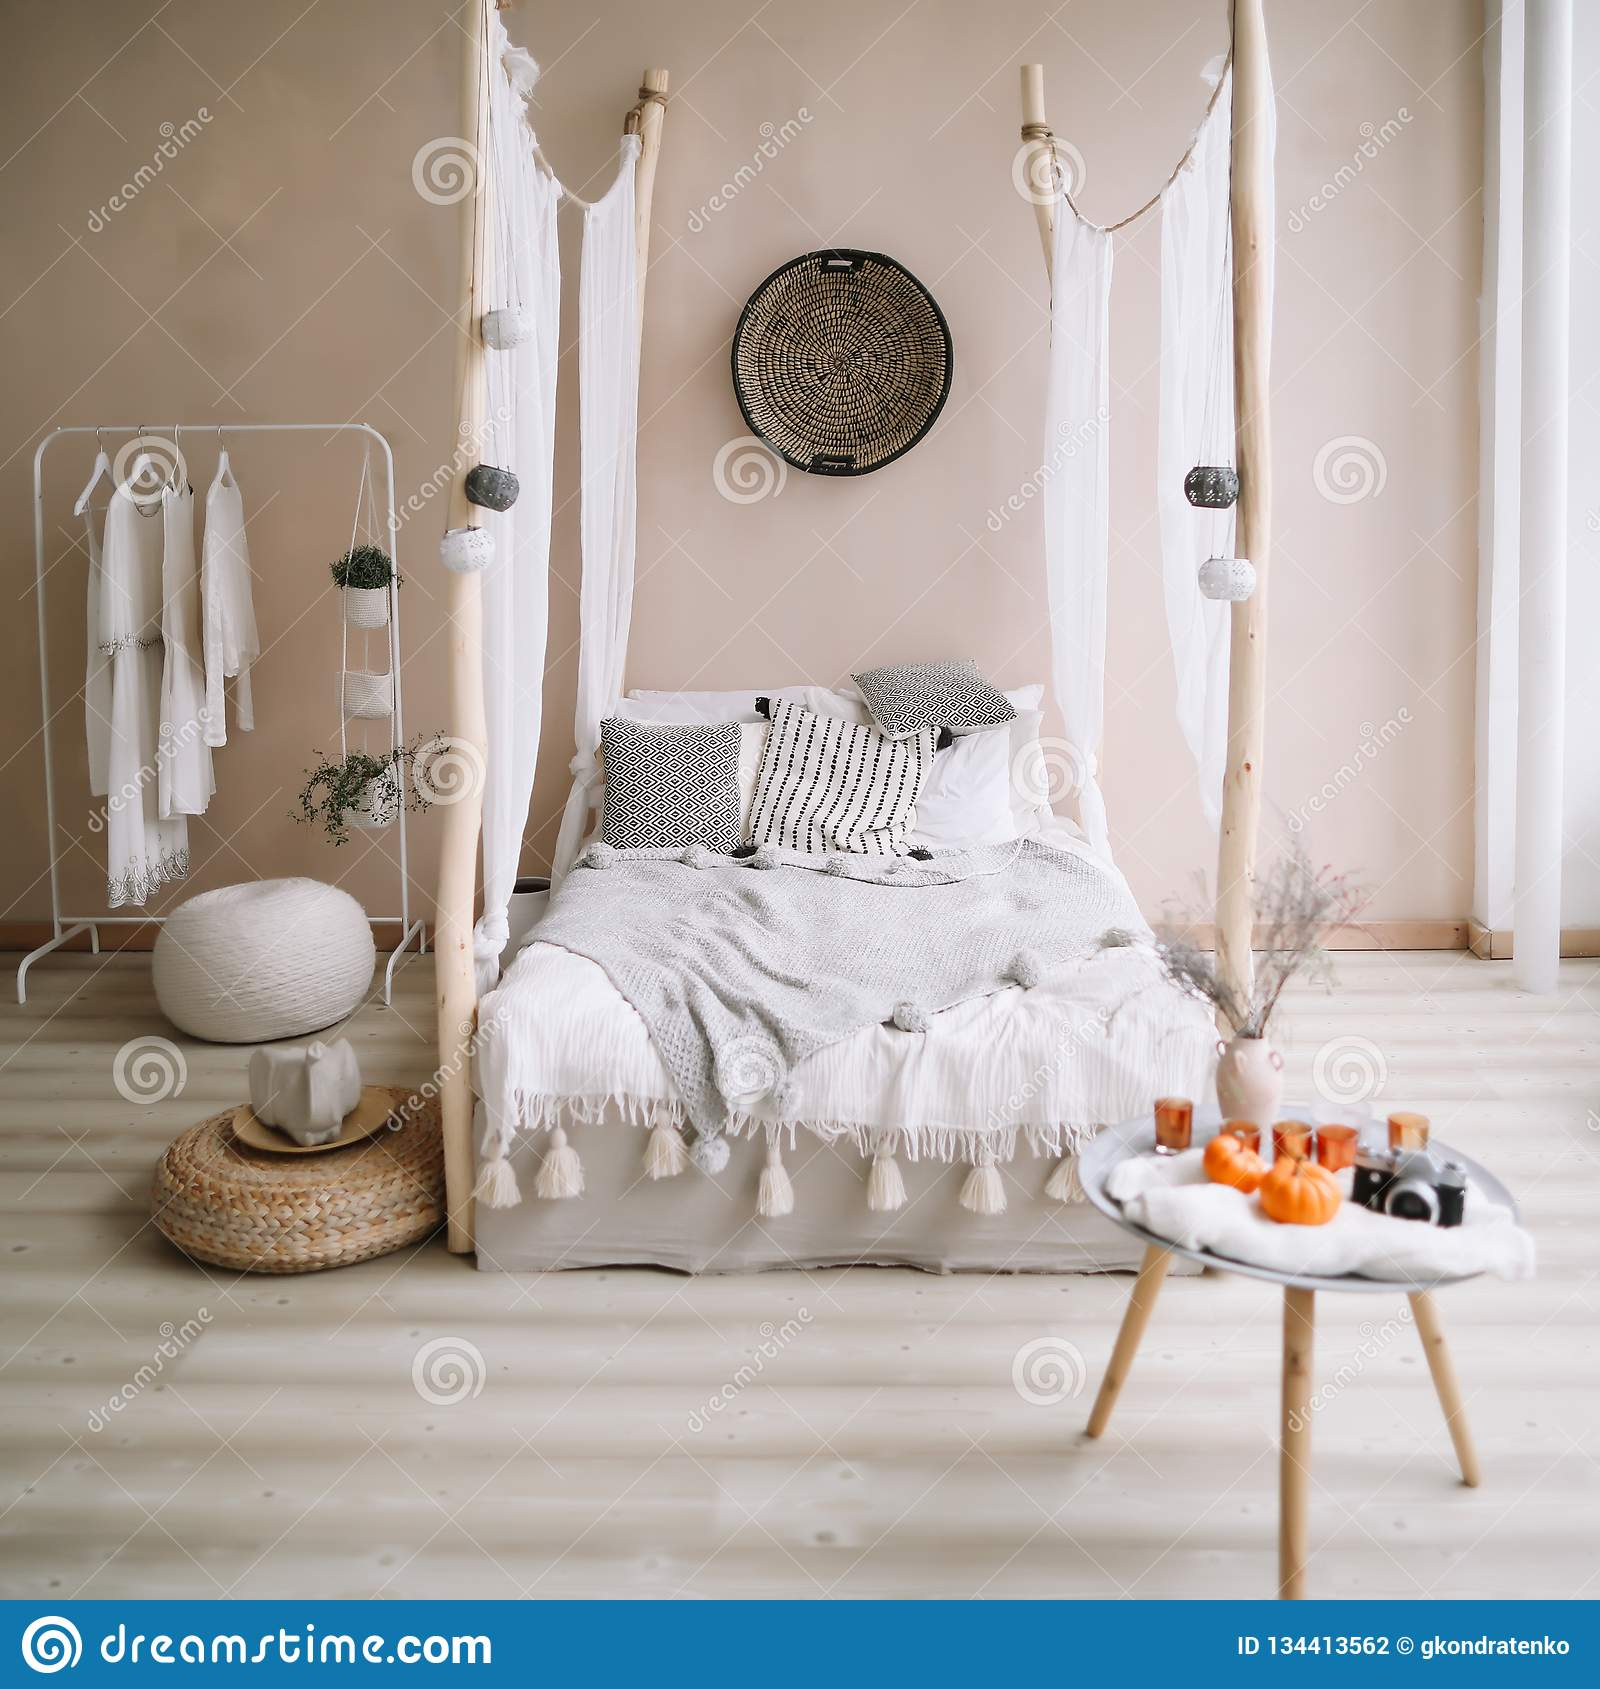 Scandinavian Furniture Bed Modern Home Interior Design Exotic Bedroom Interior Scandinavian